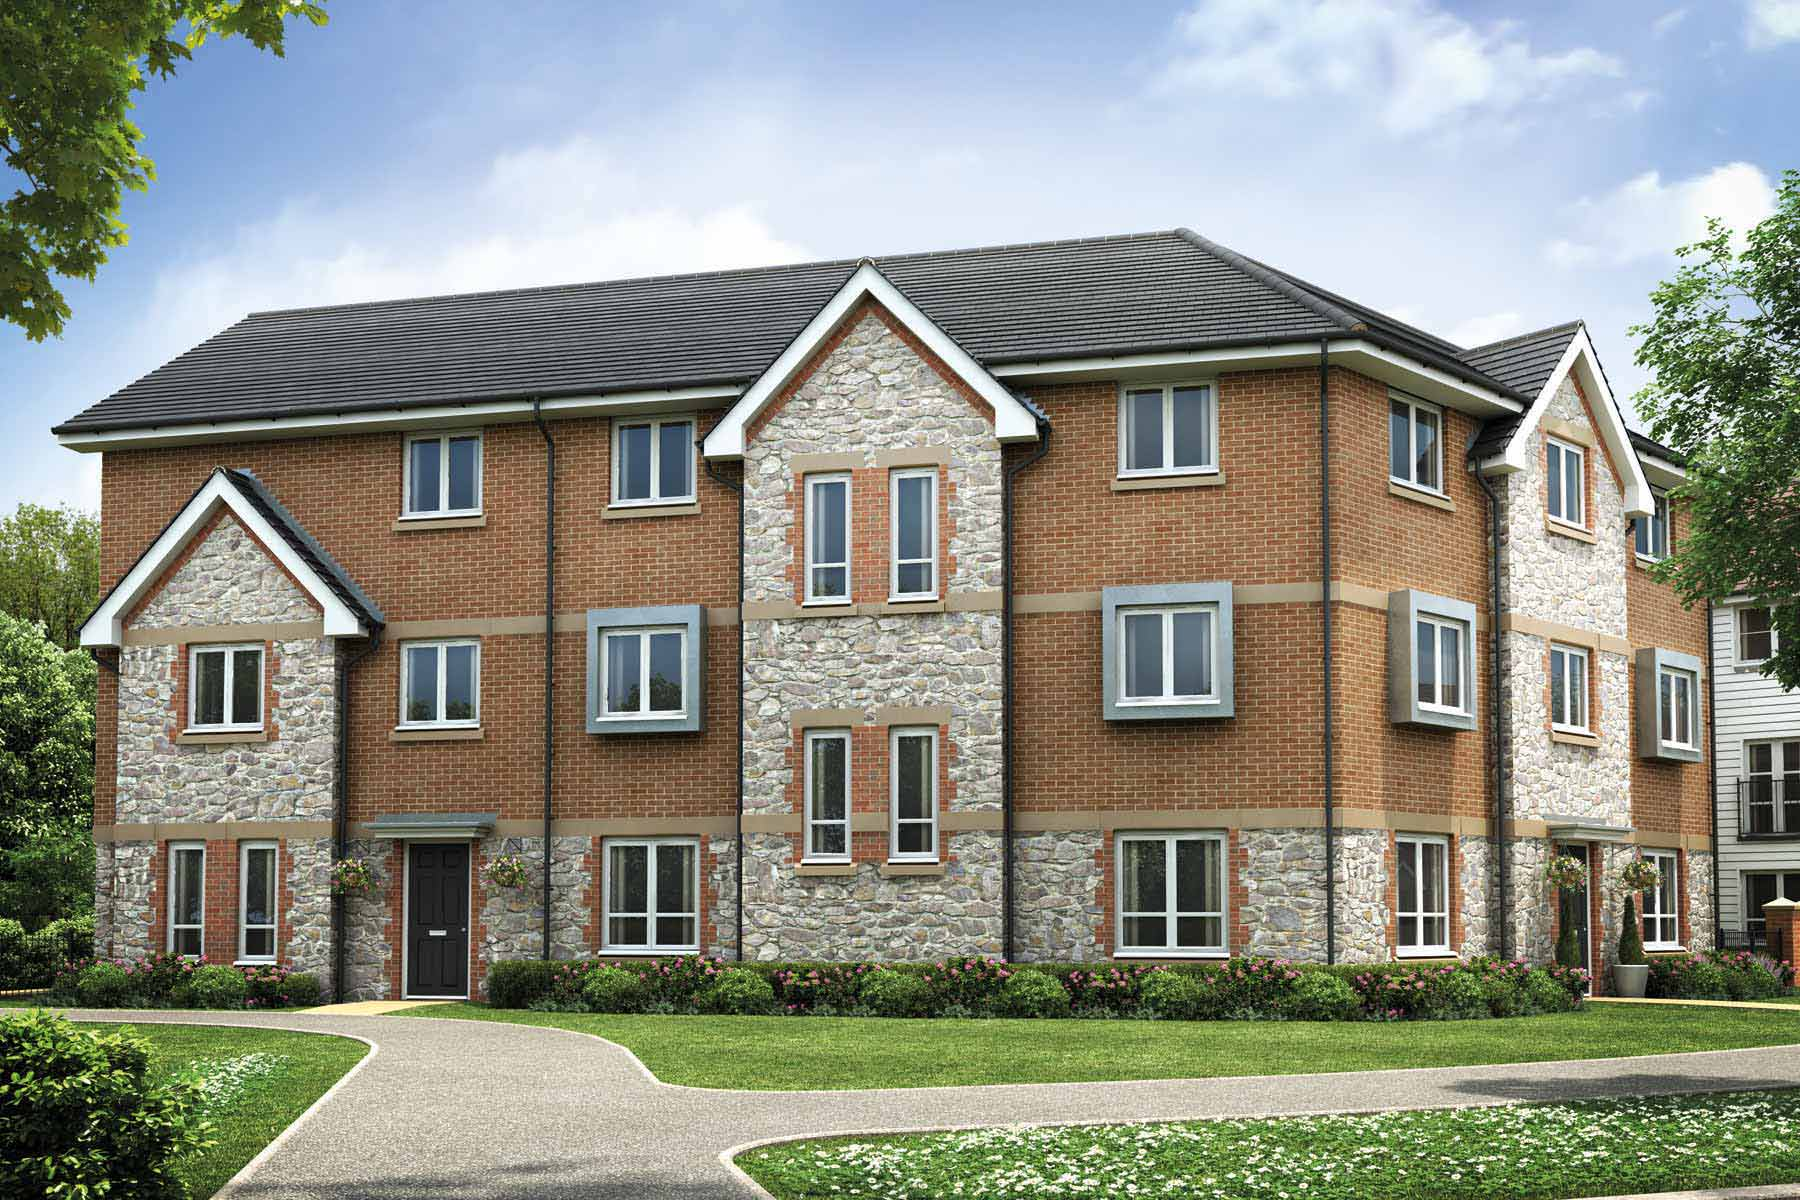 Langley park new homes in maidstone taylor wimpey for Langley home